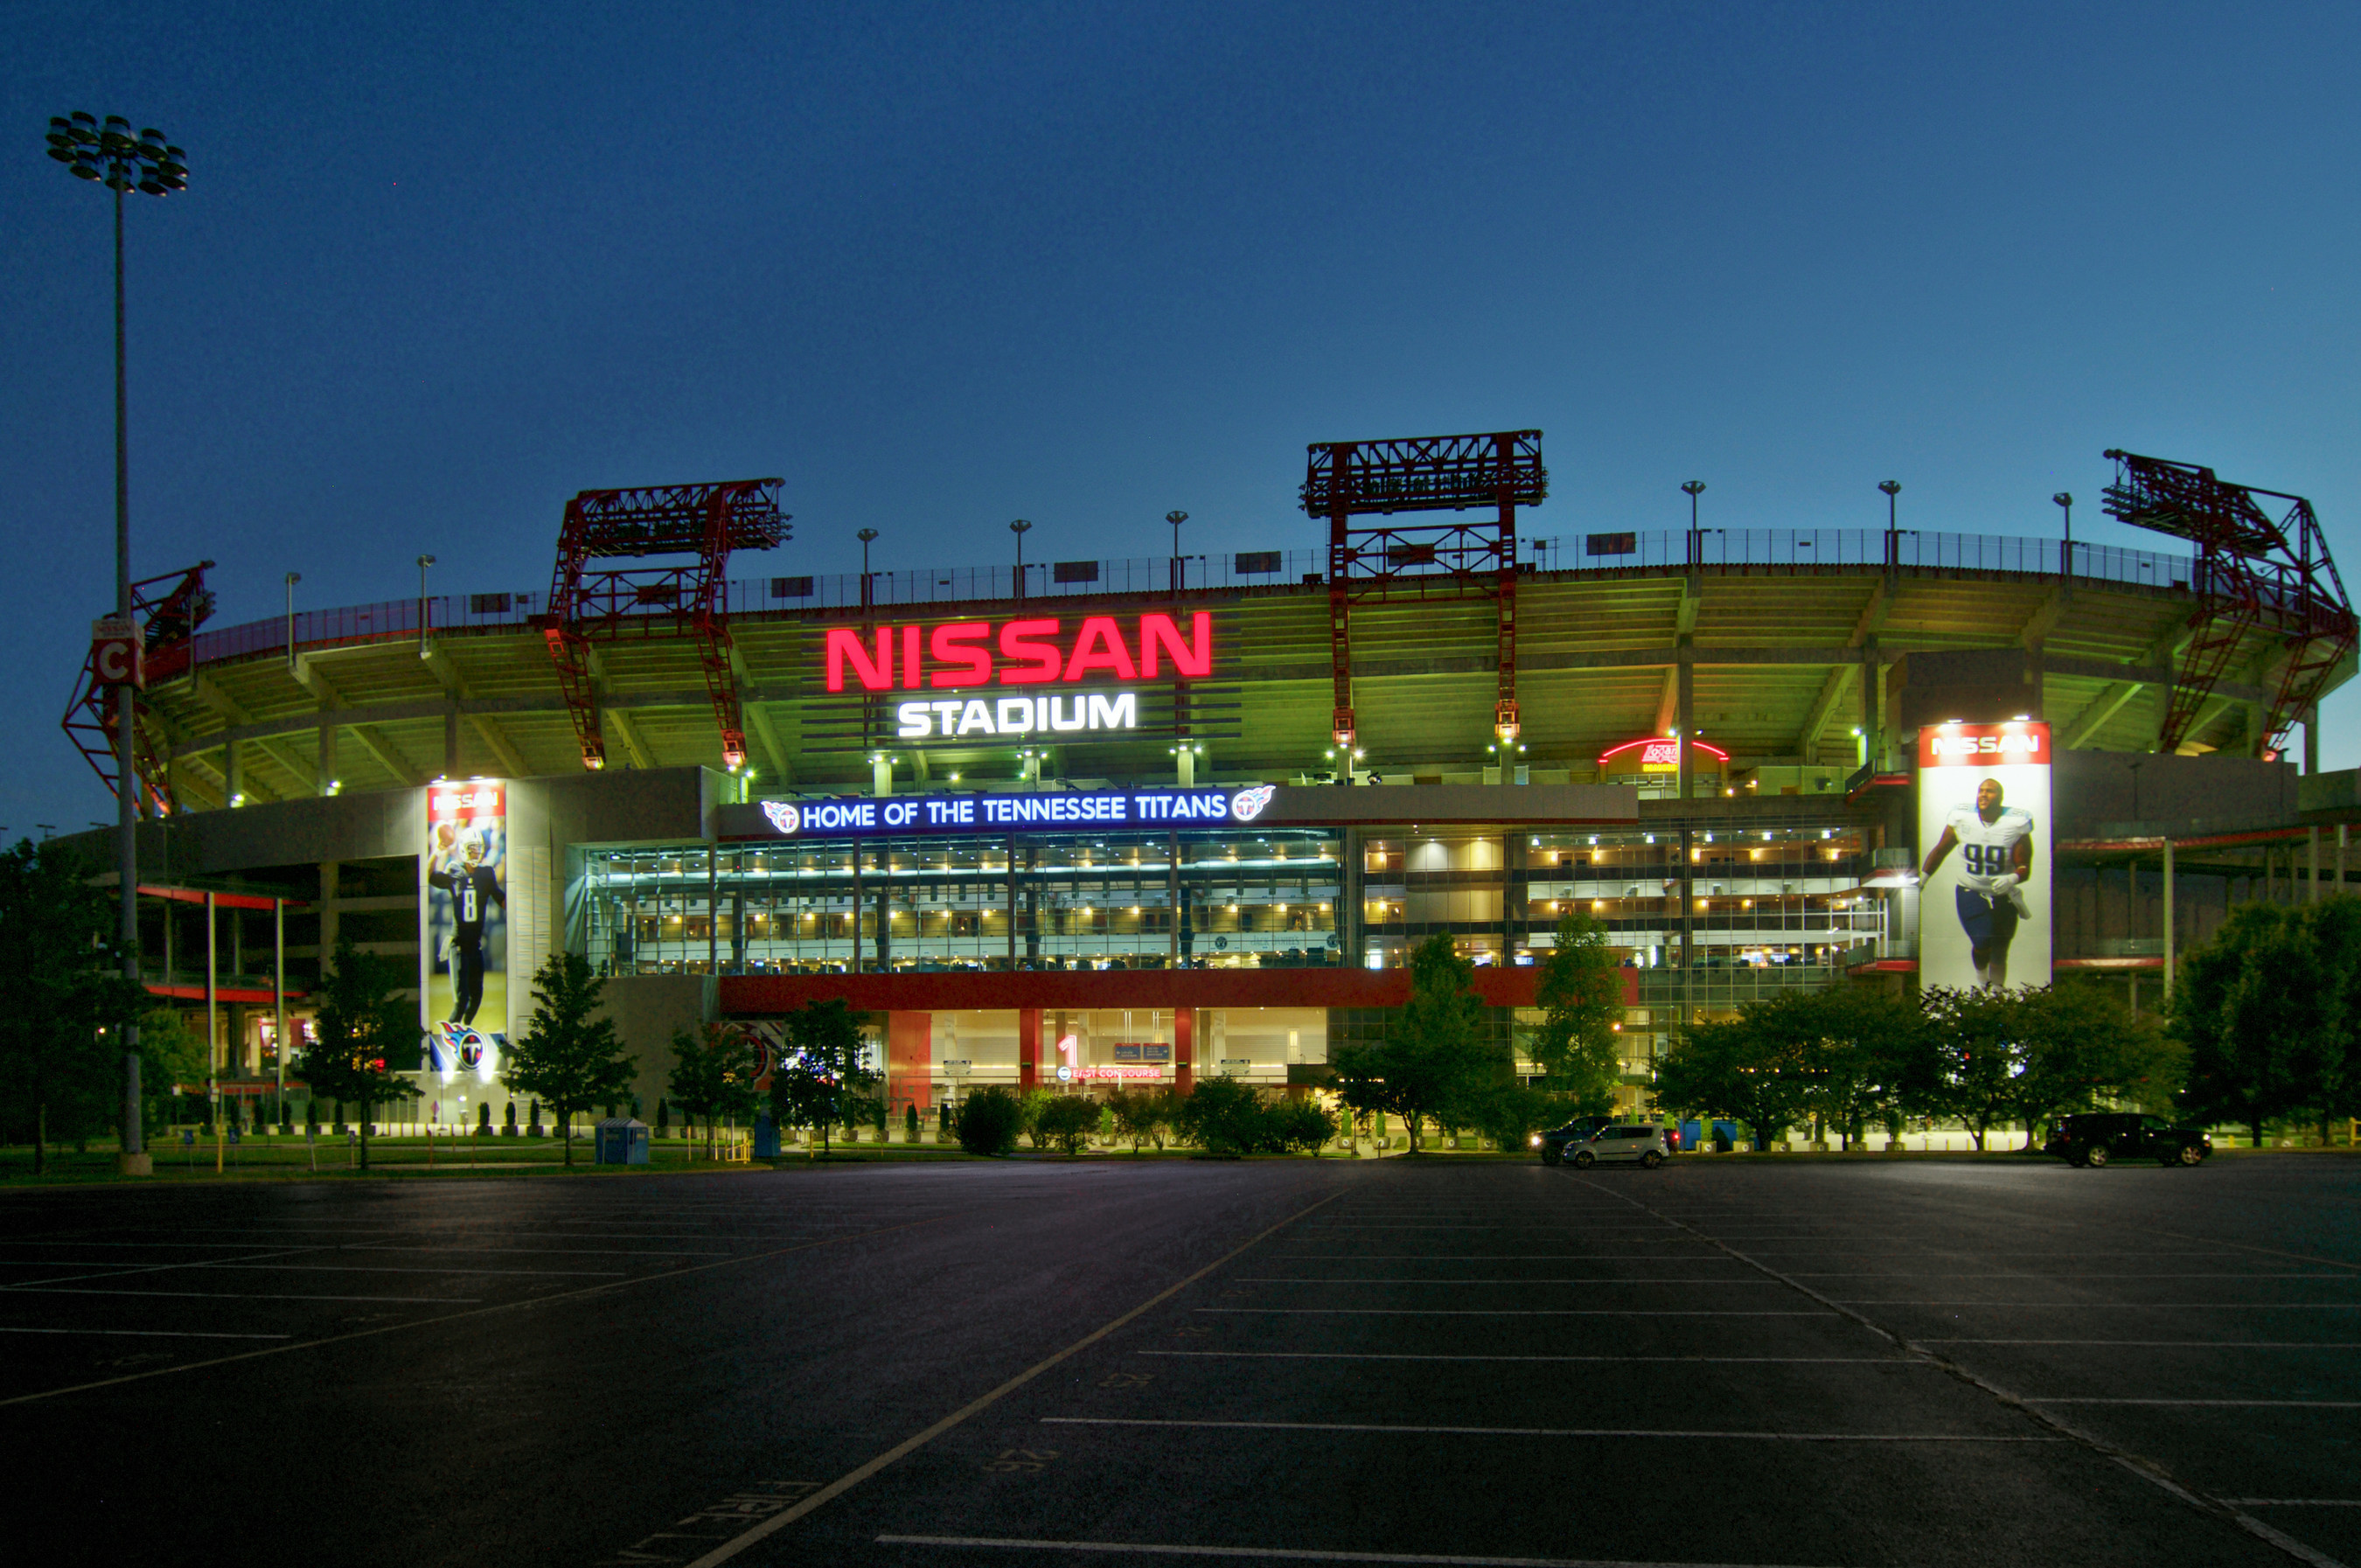 LG Electronics And Nissan Stadium Win Big In LED Lighting Overhaul